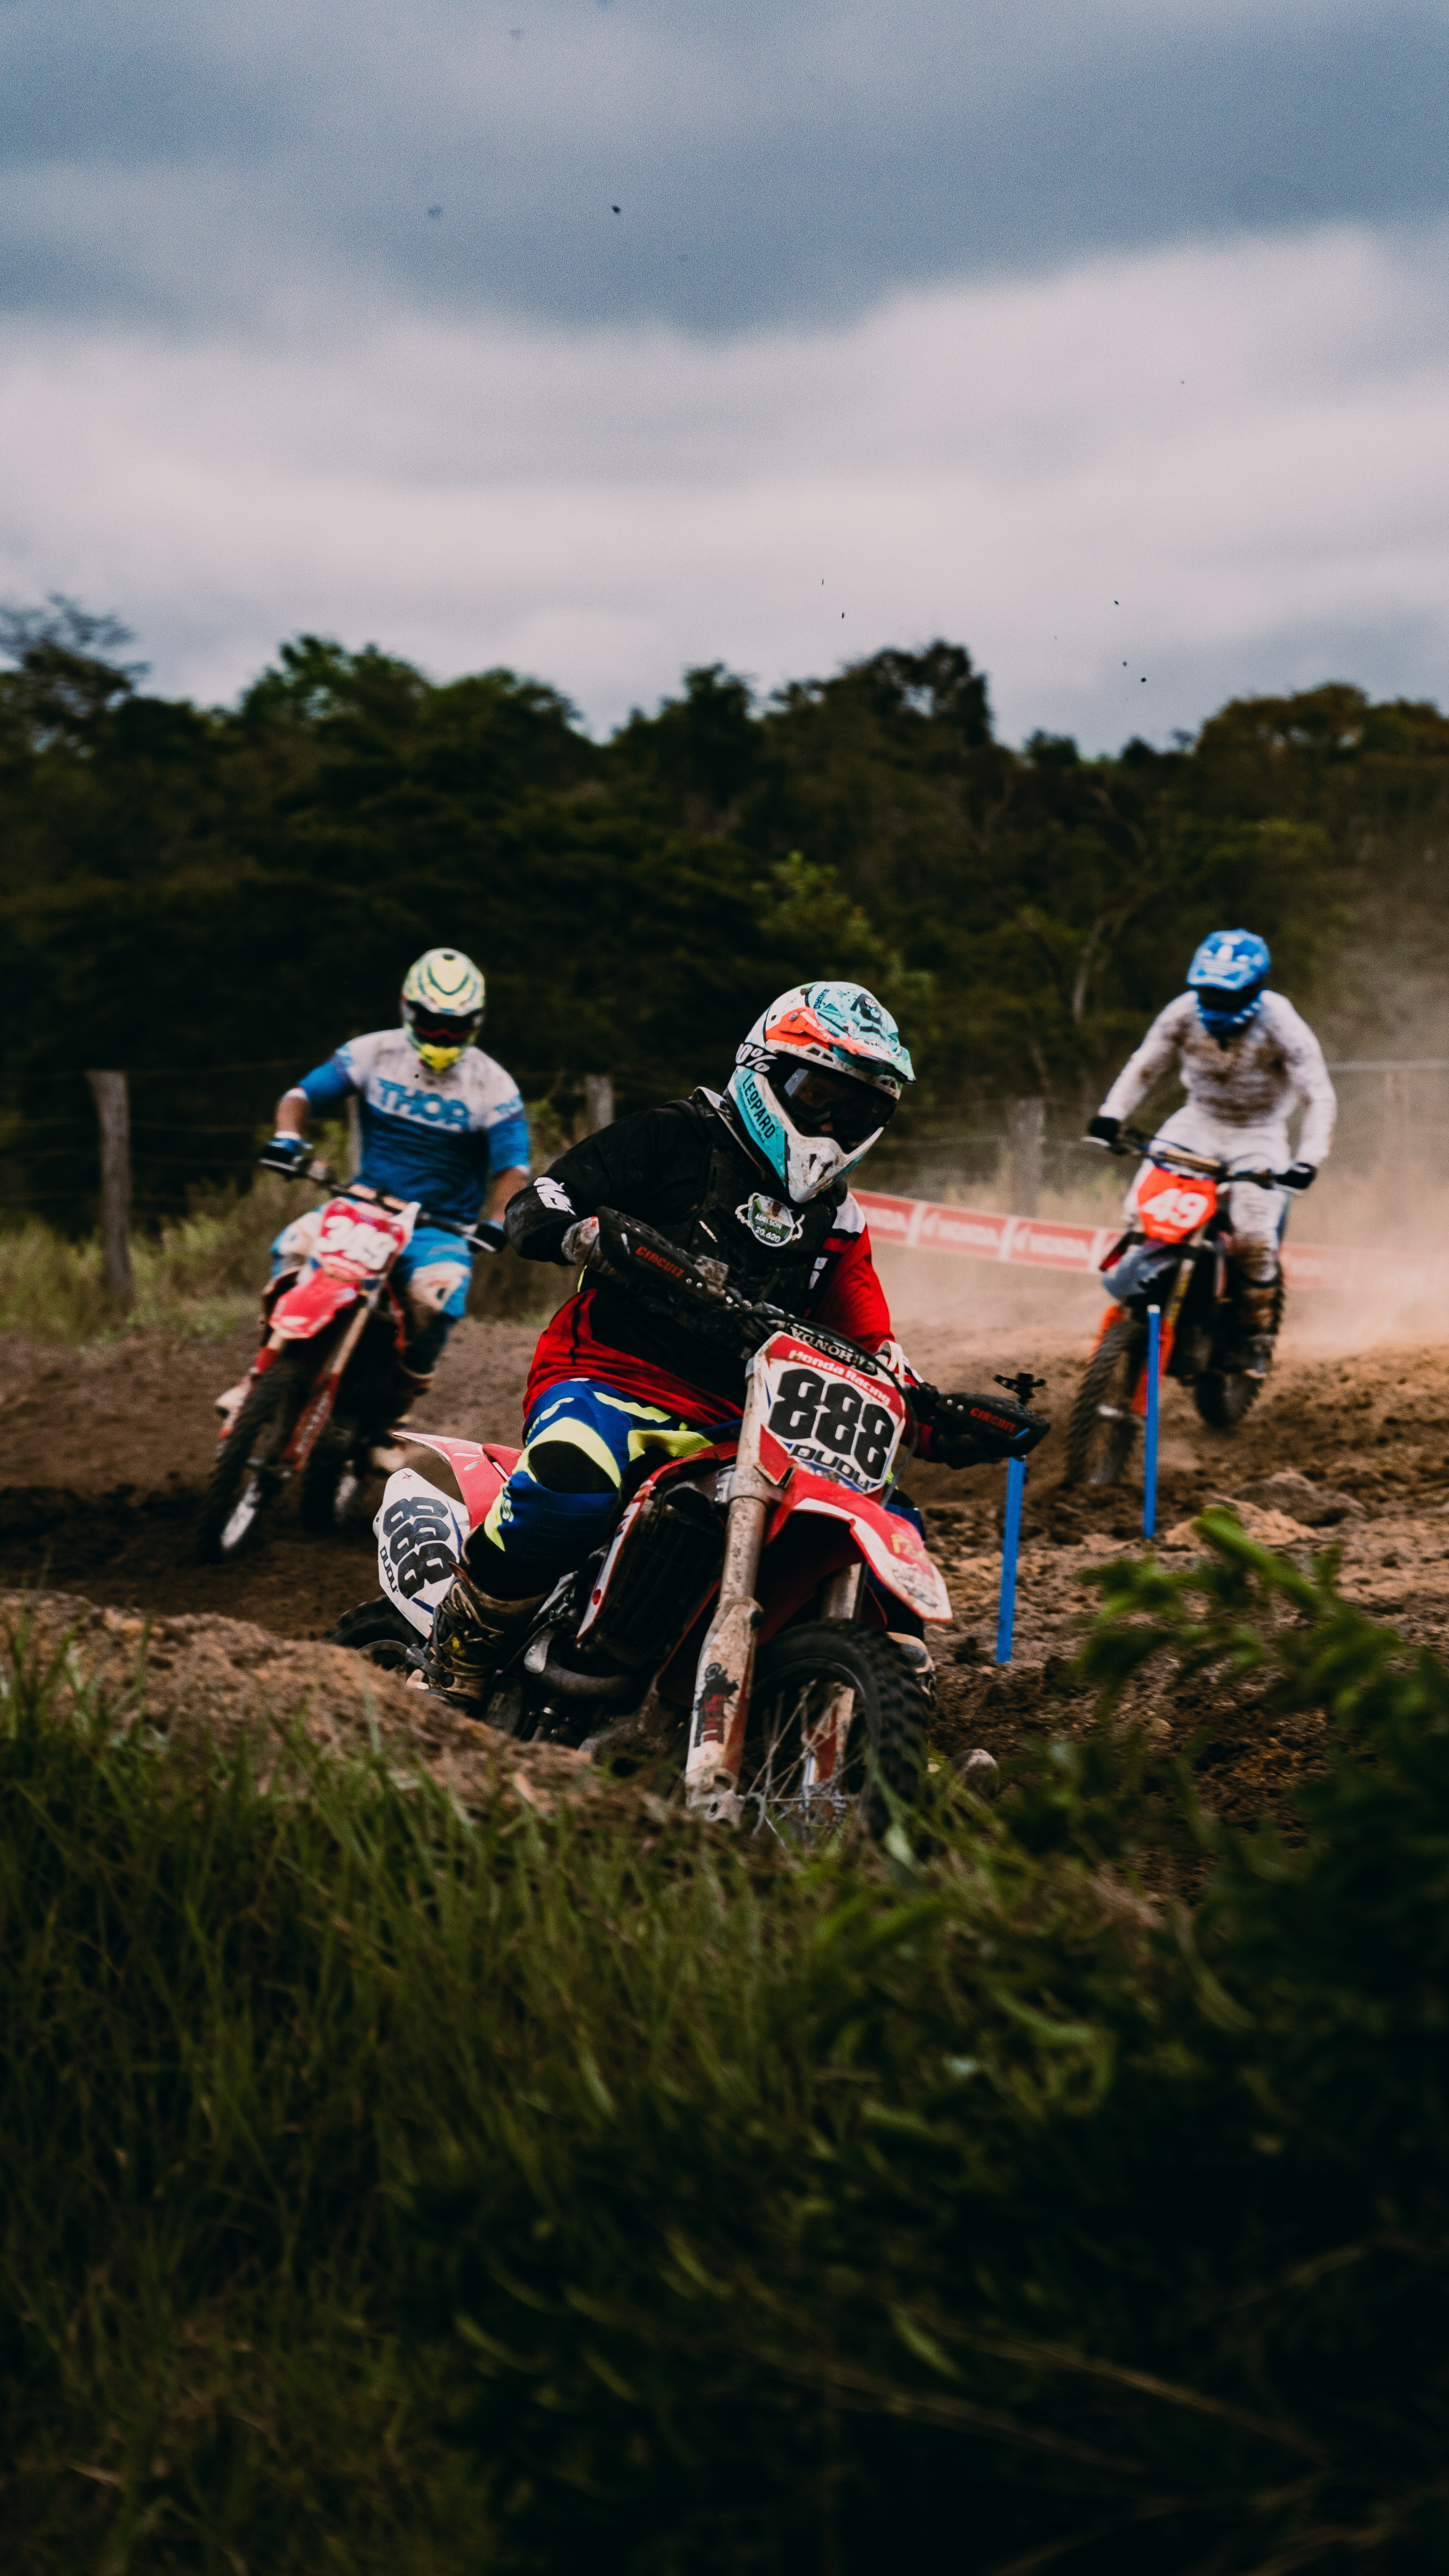 500 Motocross Pictures Hd Download Free Images On Unsplash